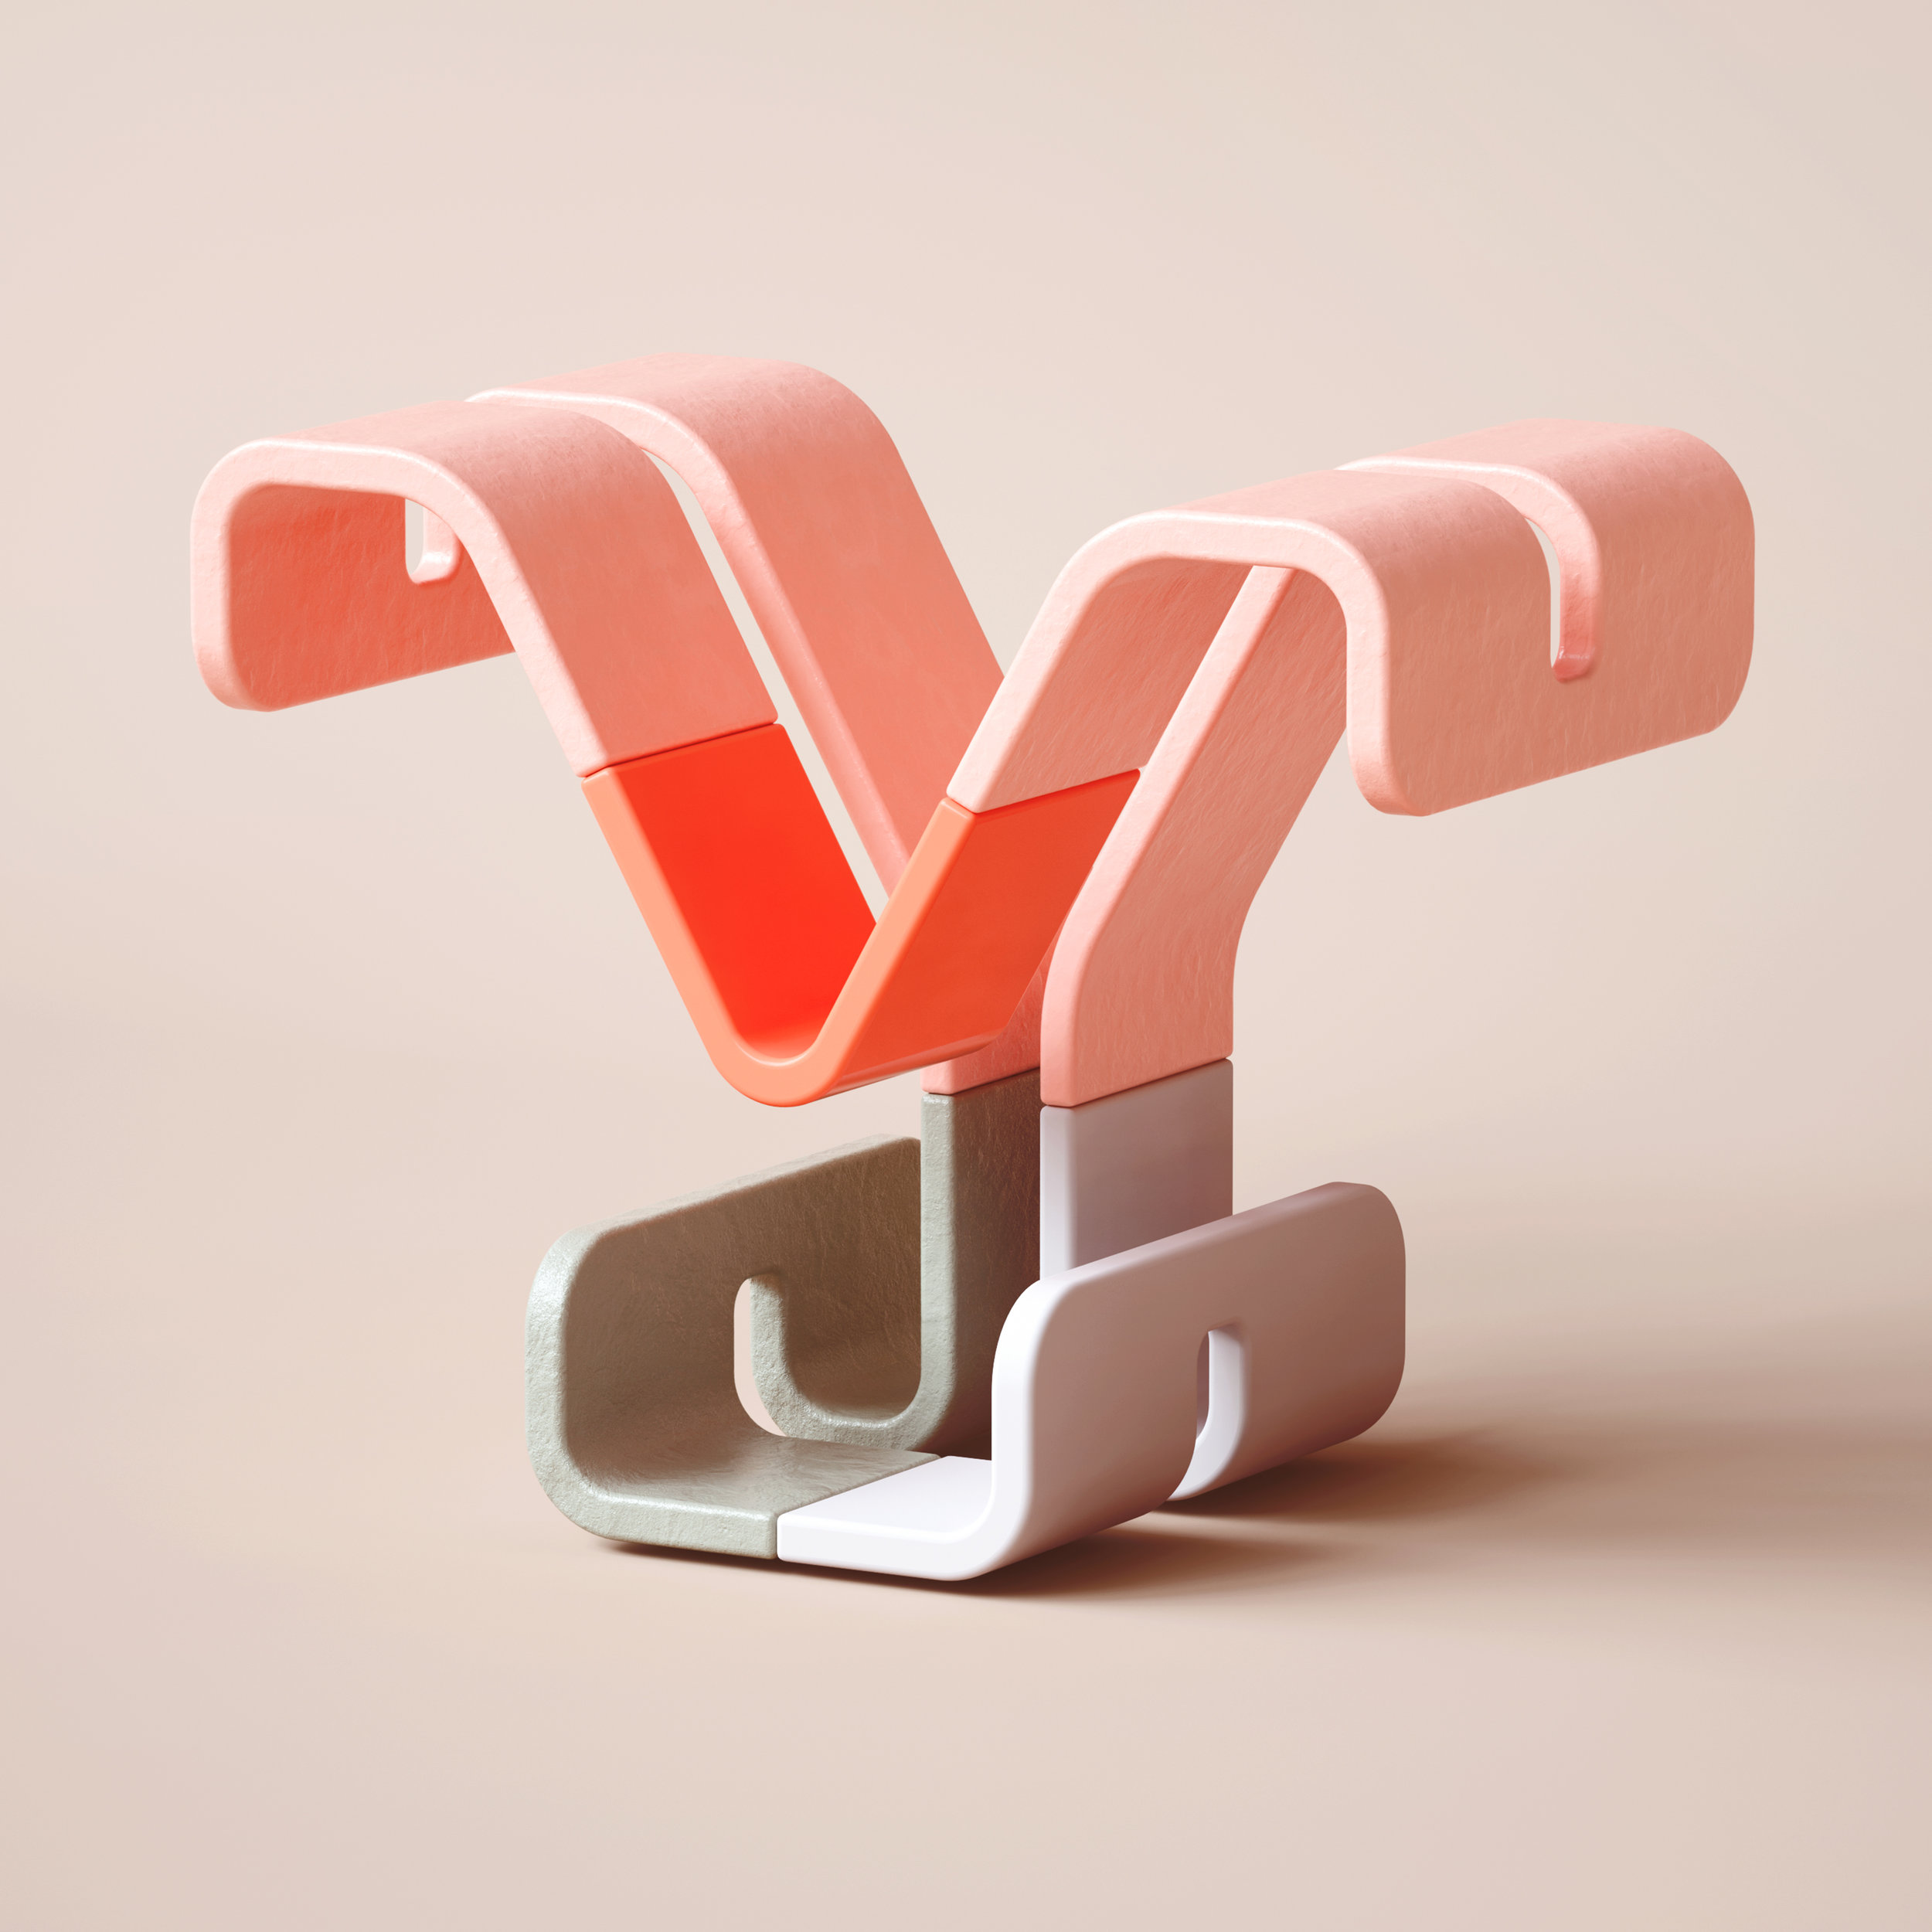 36 Days of Type 2019 - 3D Typeform letter Y visual.